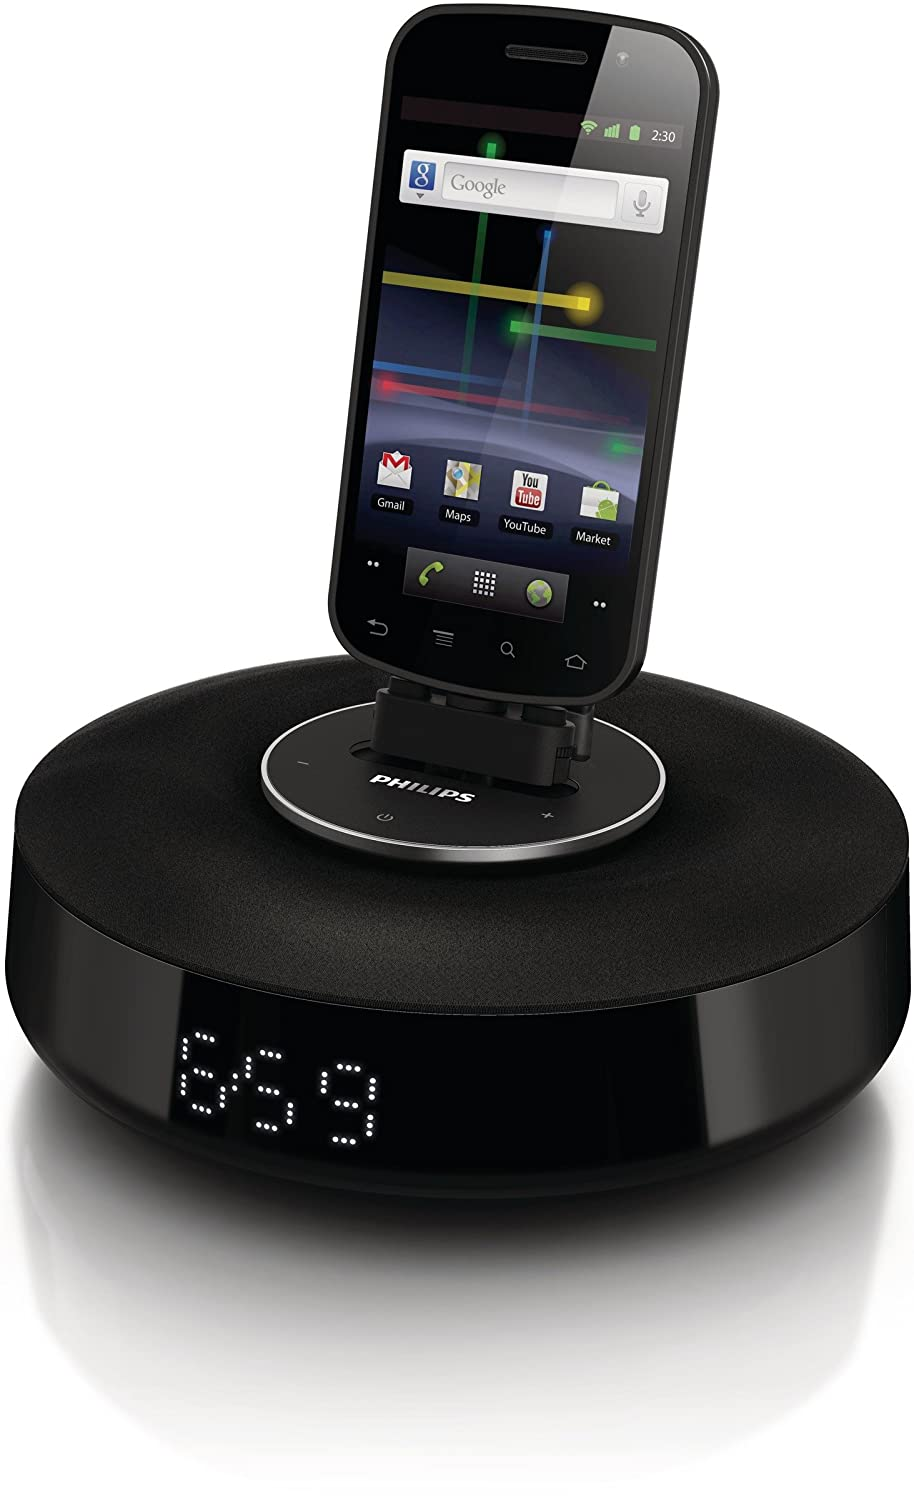 top 10 best portable mp3 audio docks for android smartphones 2016 on flipboard. Black Bedroom Furniture Sets. Home Design Ideas